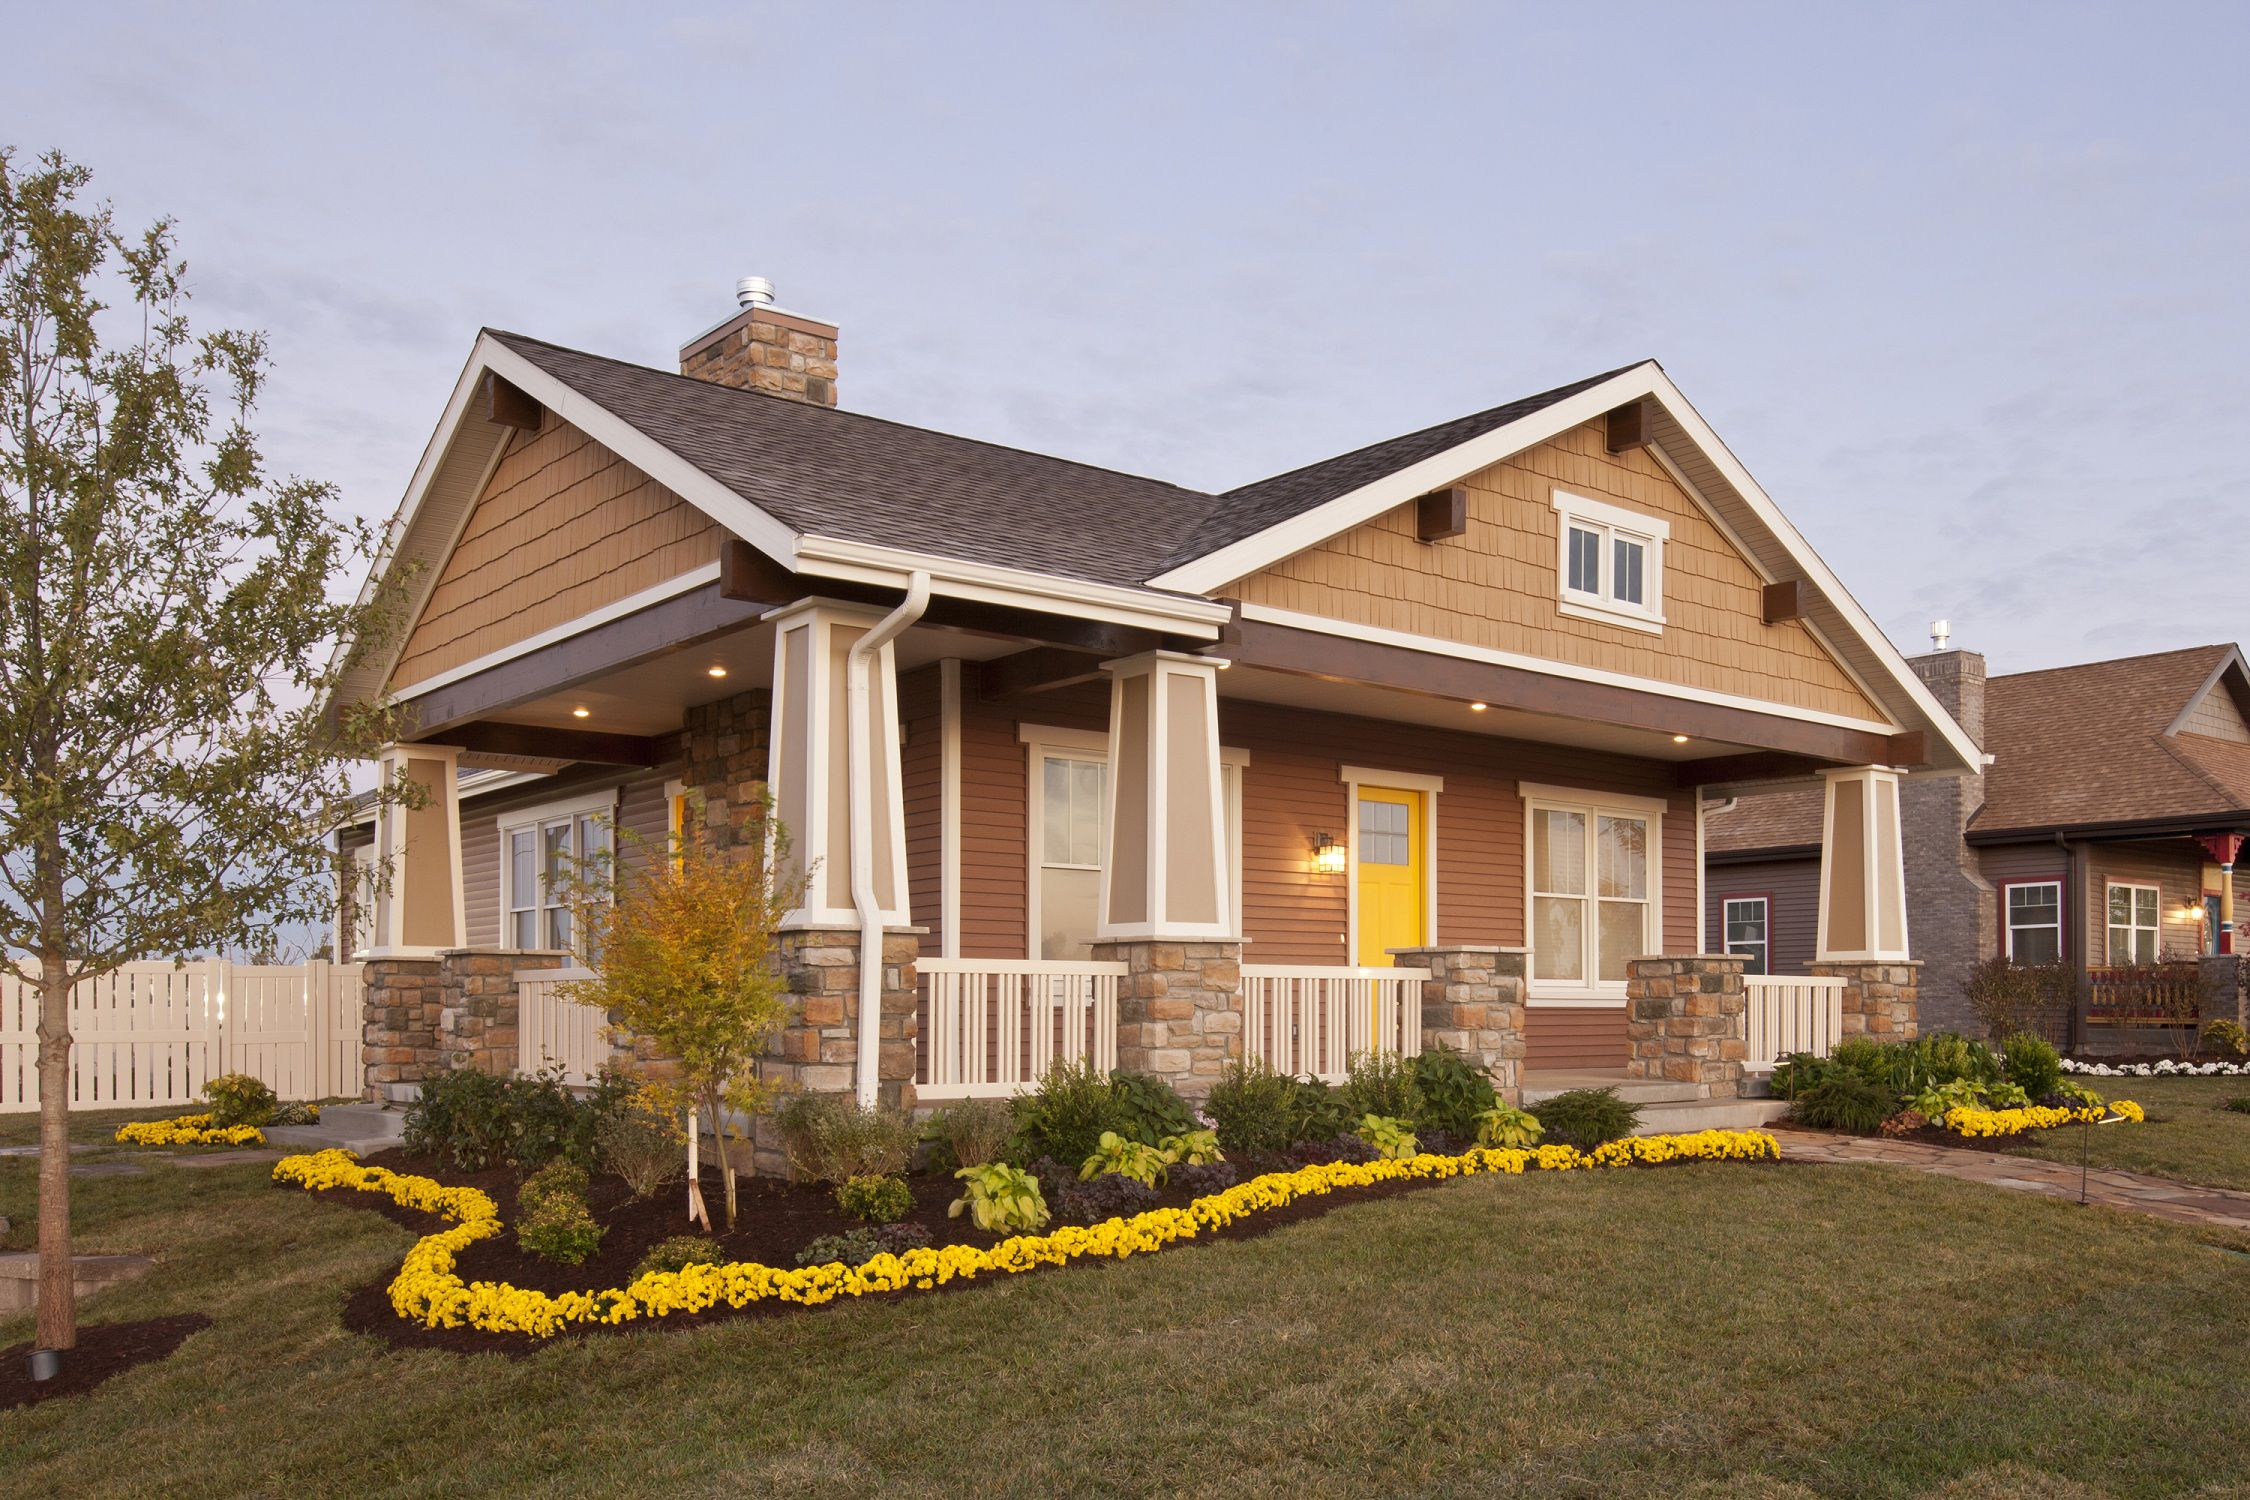 Home exterior colors yellow the image Which color is best for home